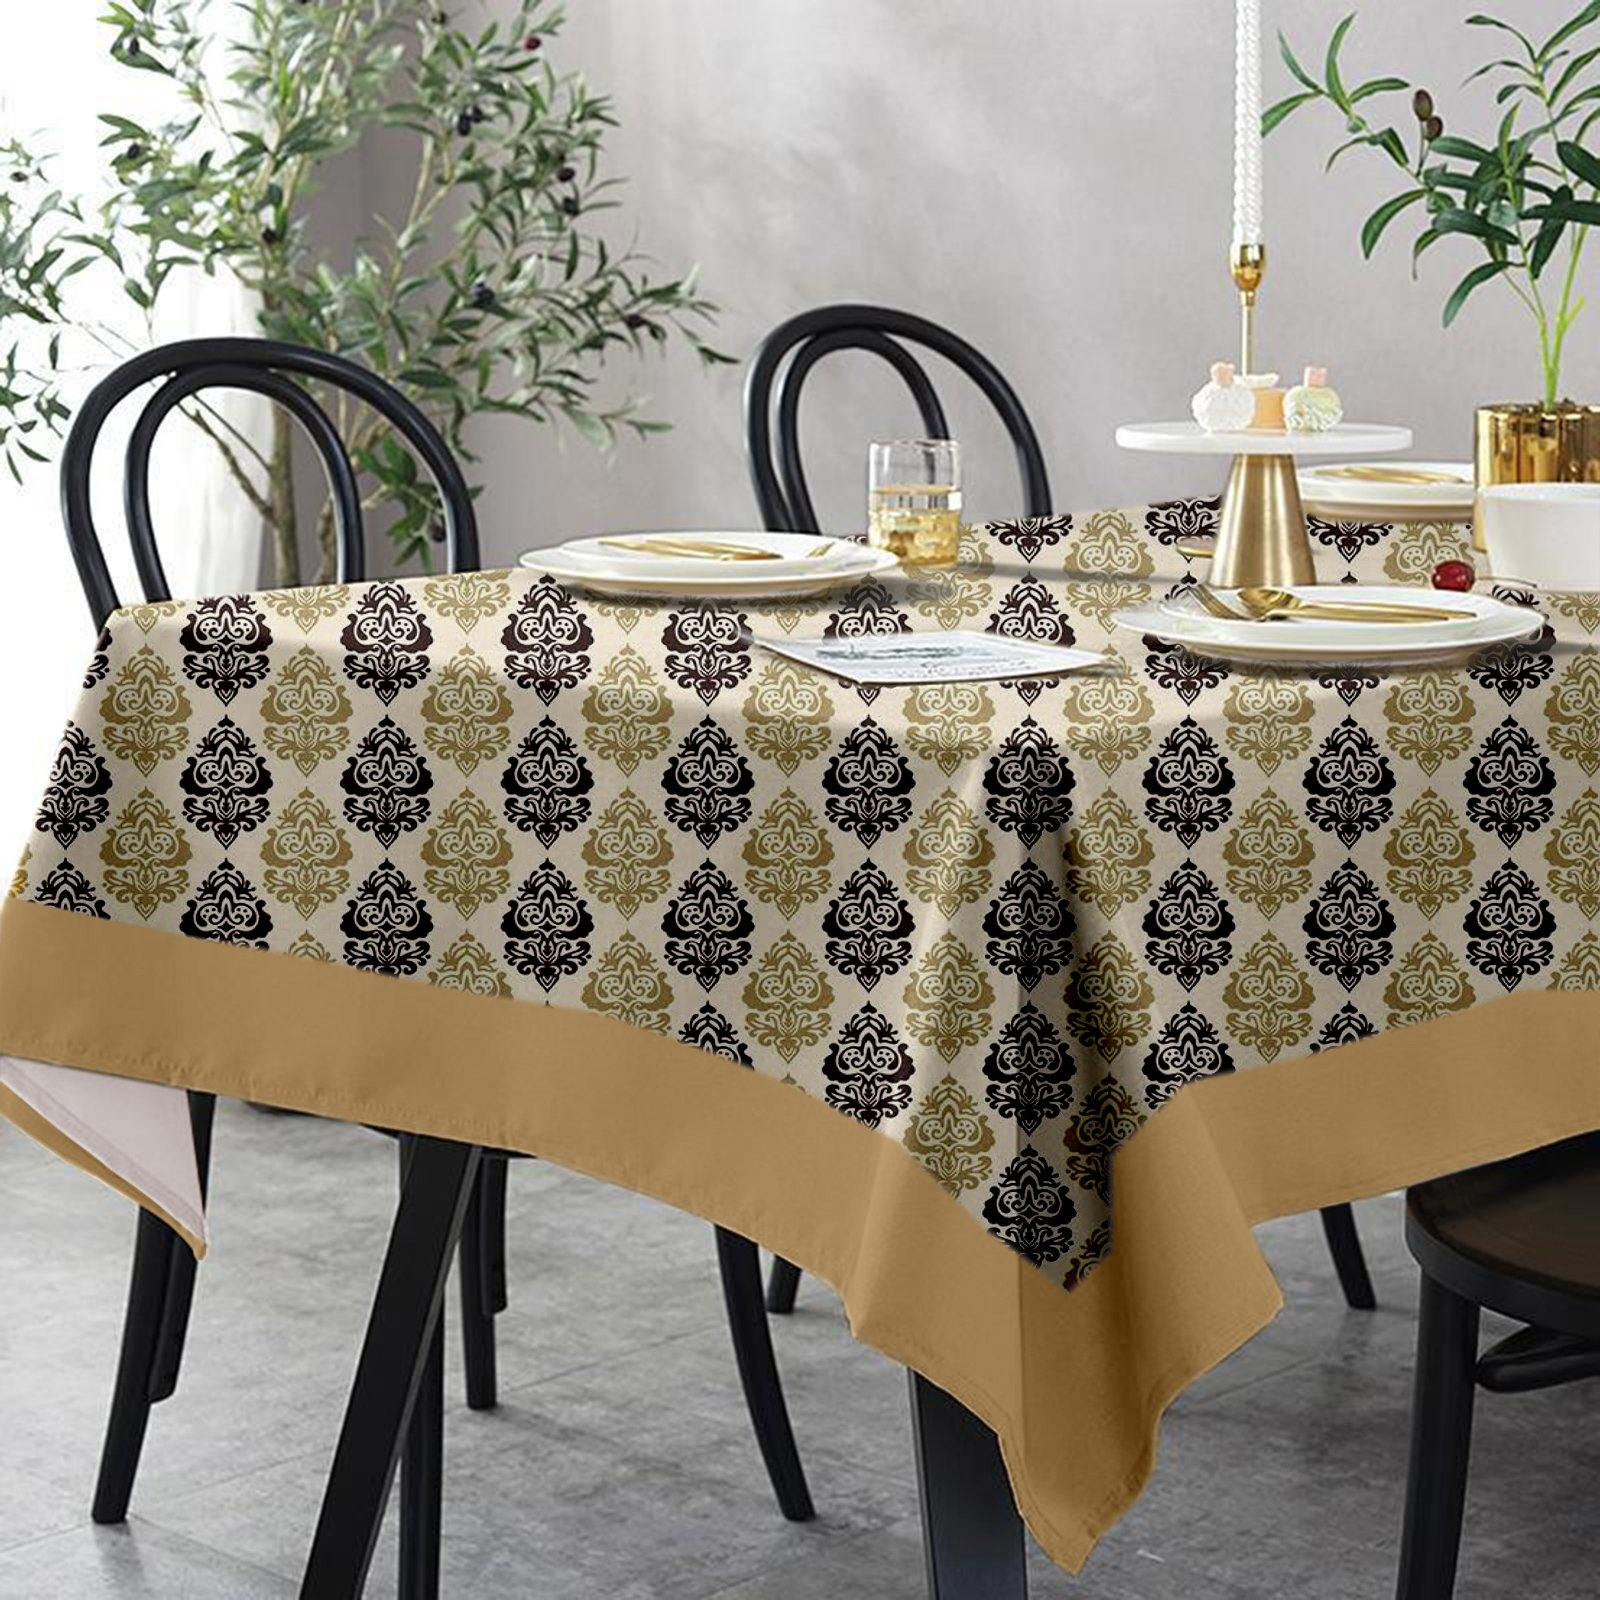 Lushomes 6 Seater Small Earth Printed Table Cloth